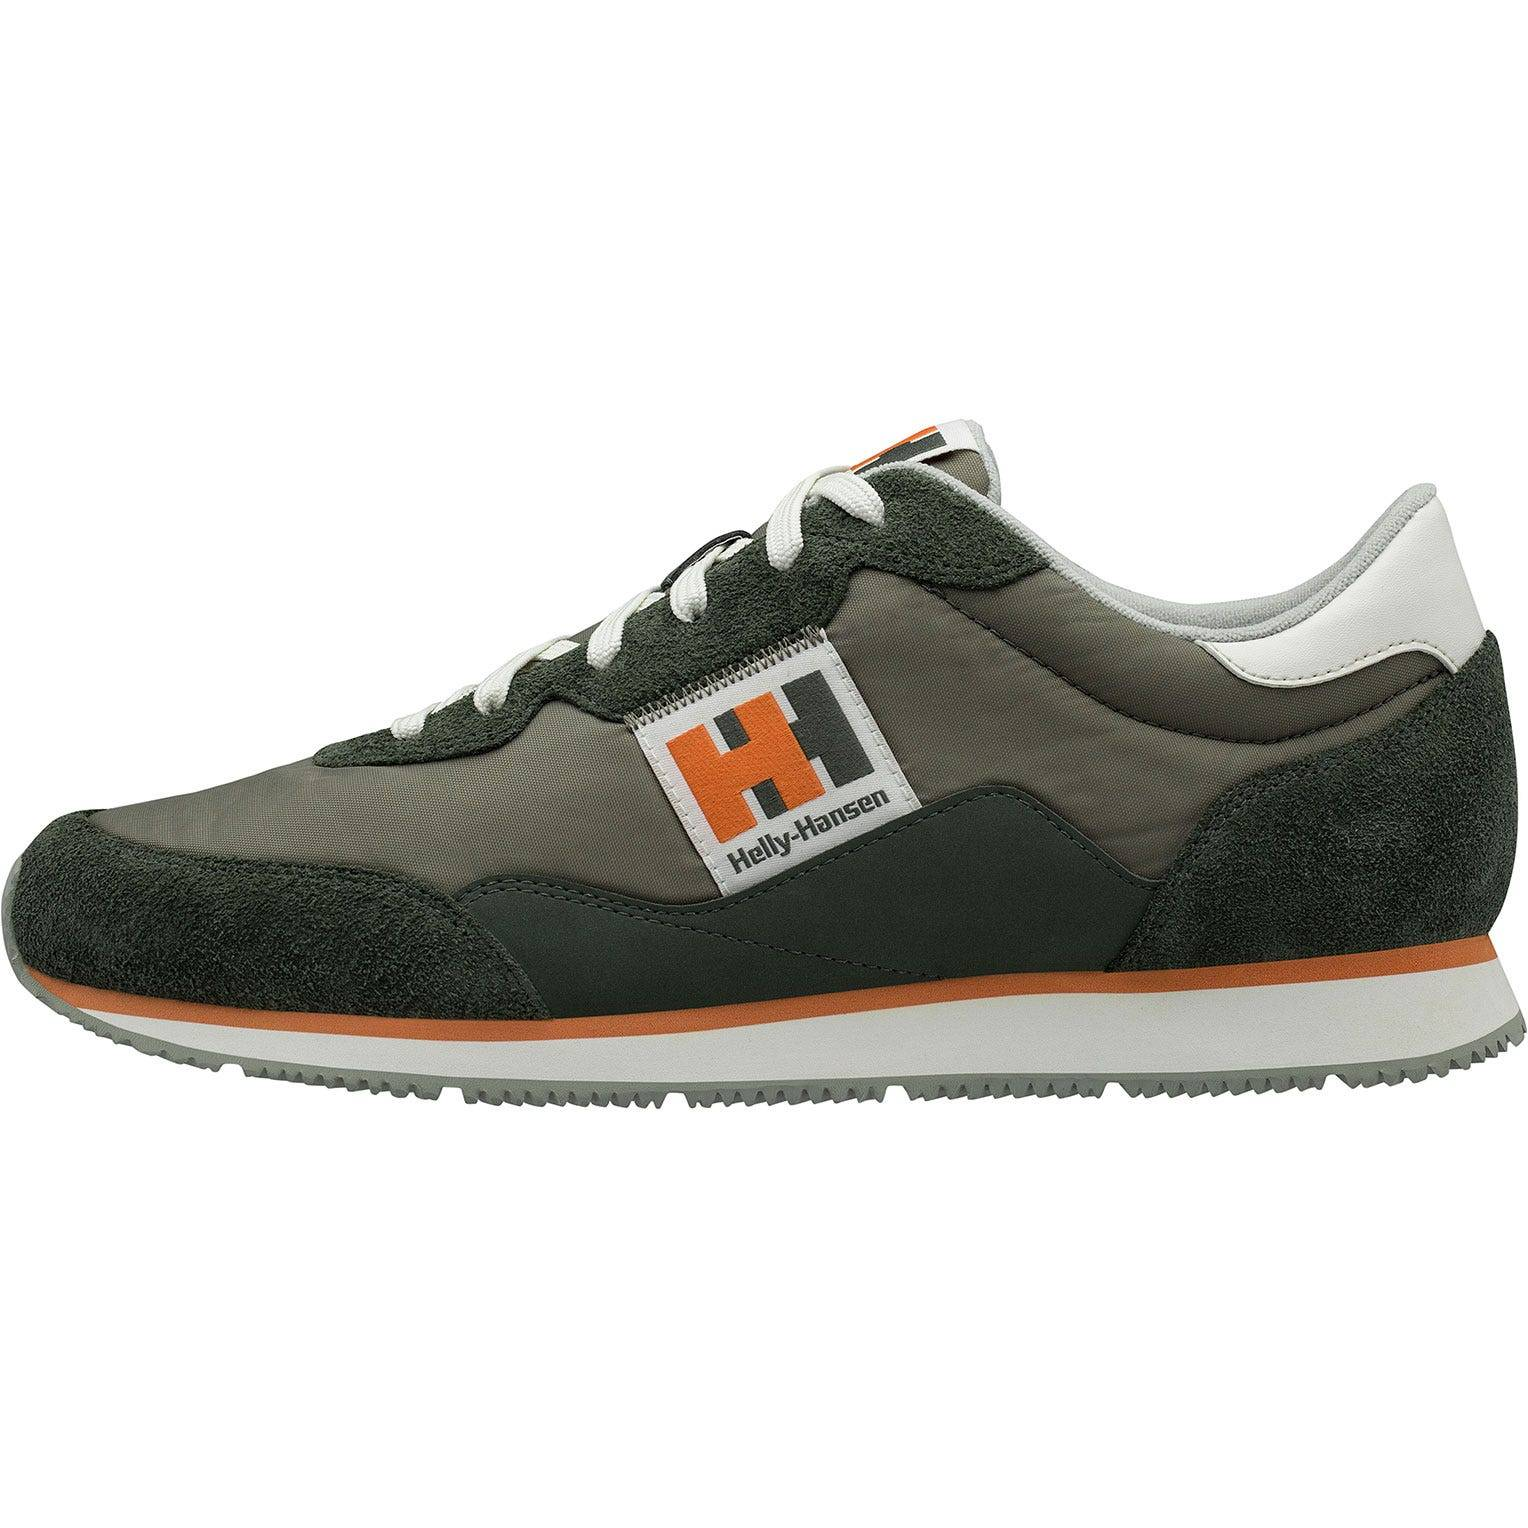 Helly Hansen Ripples Lowcut Sneaker Mens Casual Shoe Green 42.5/9